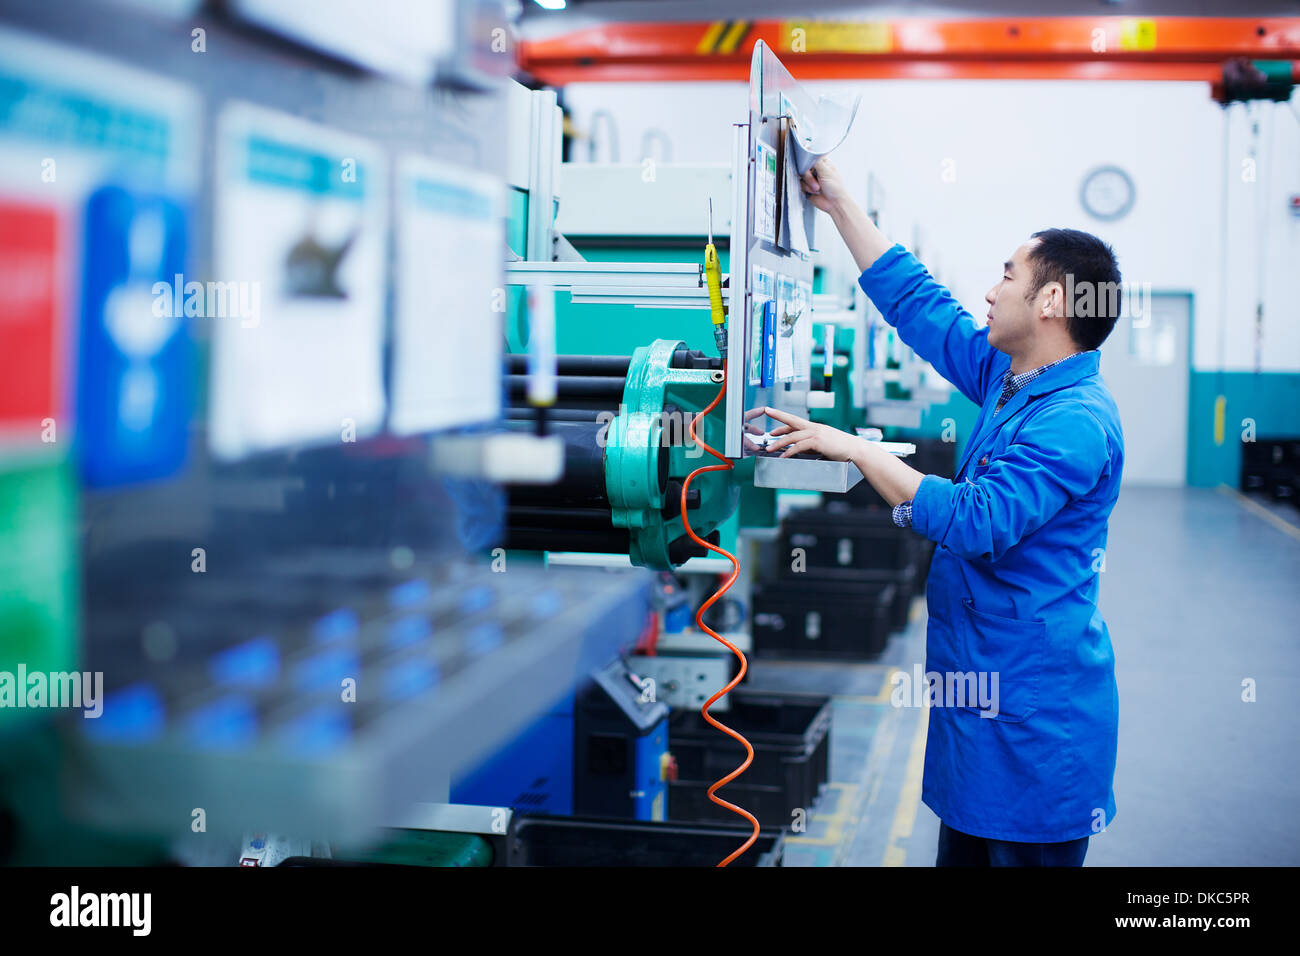 Worker at small parts manufacturing factory in China, reaching up to press button on control panel Stock Photo